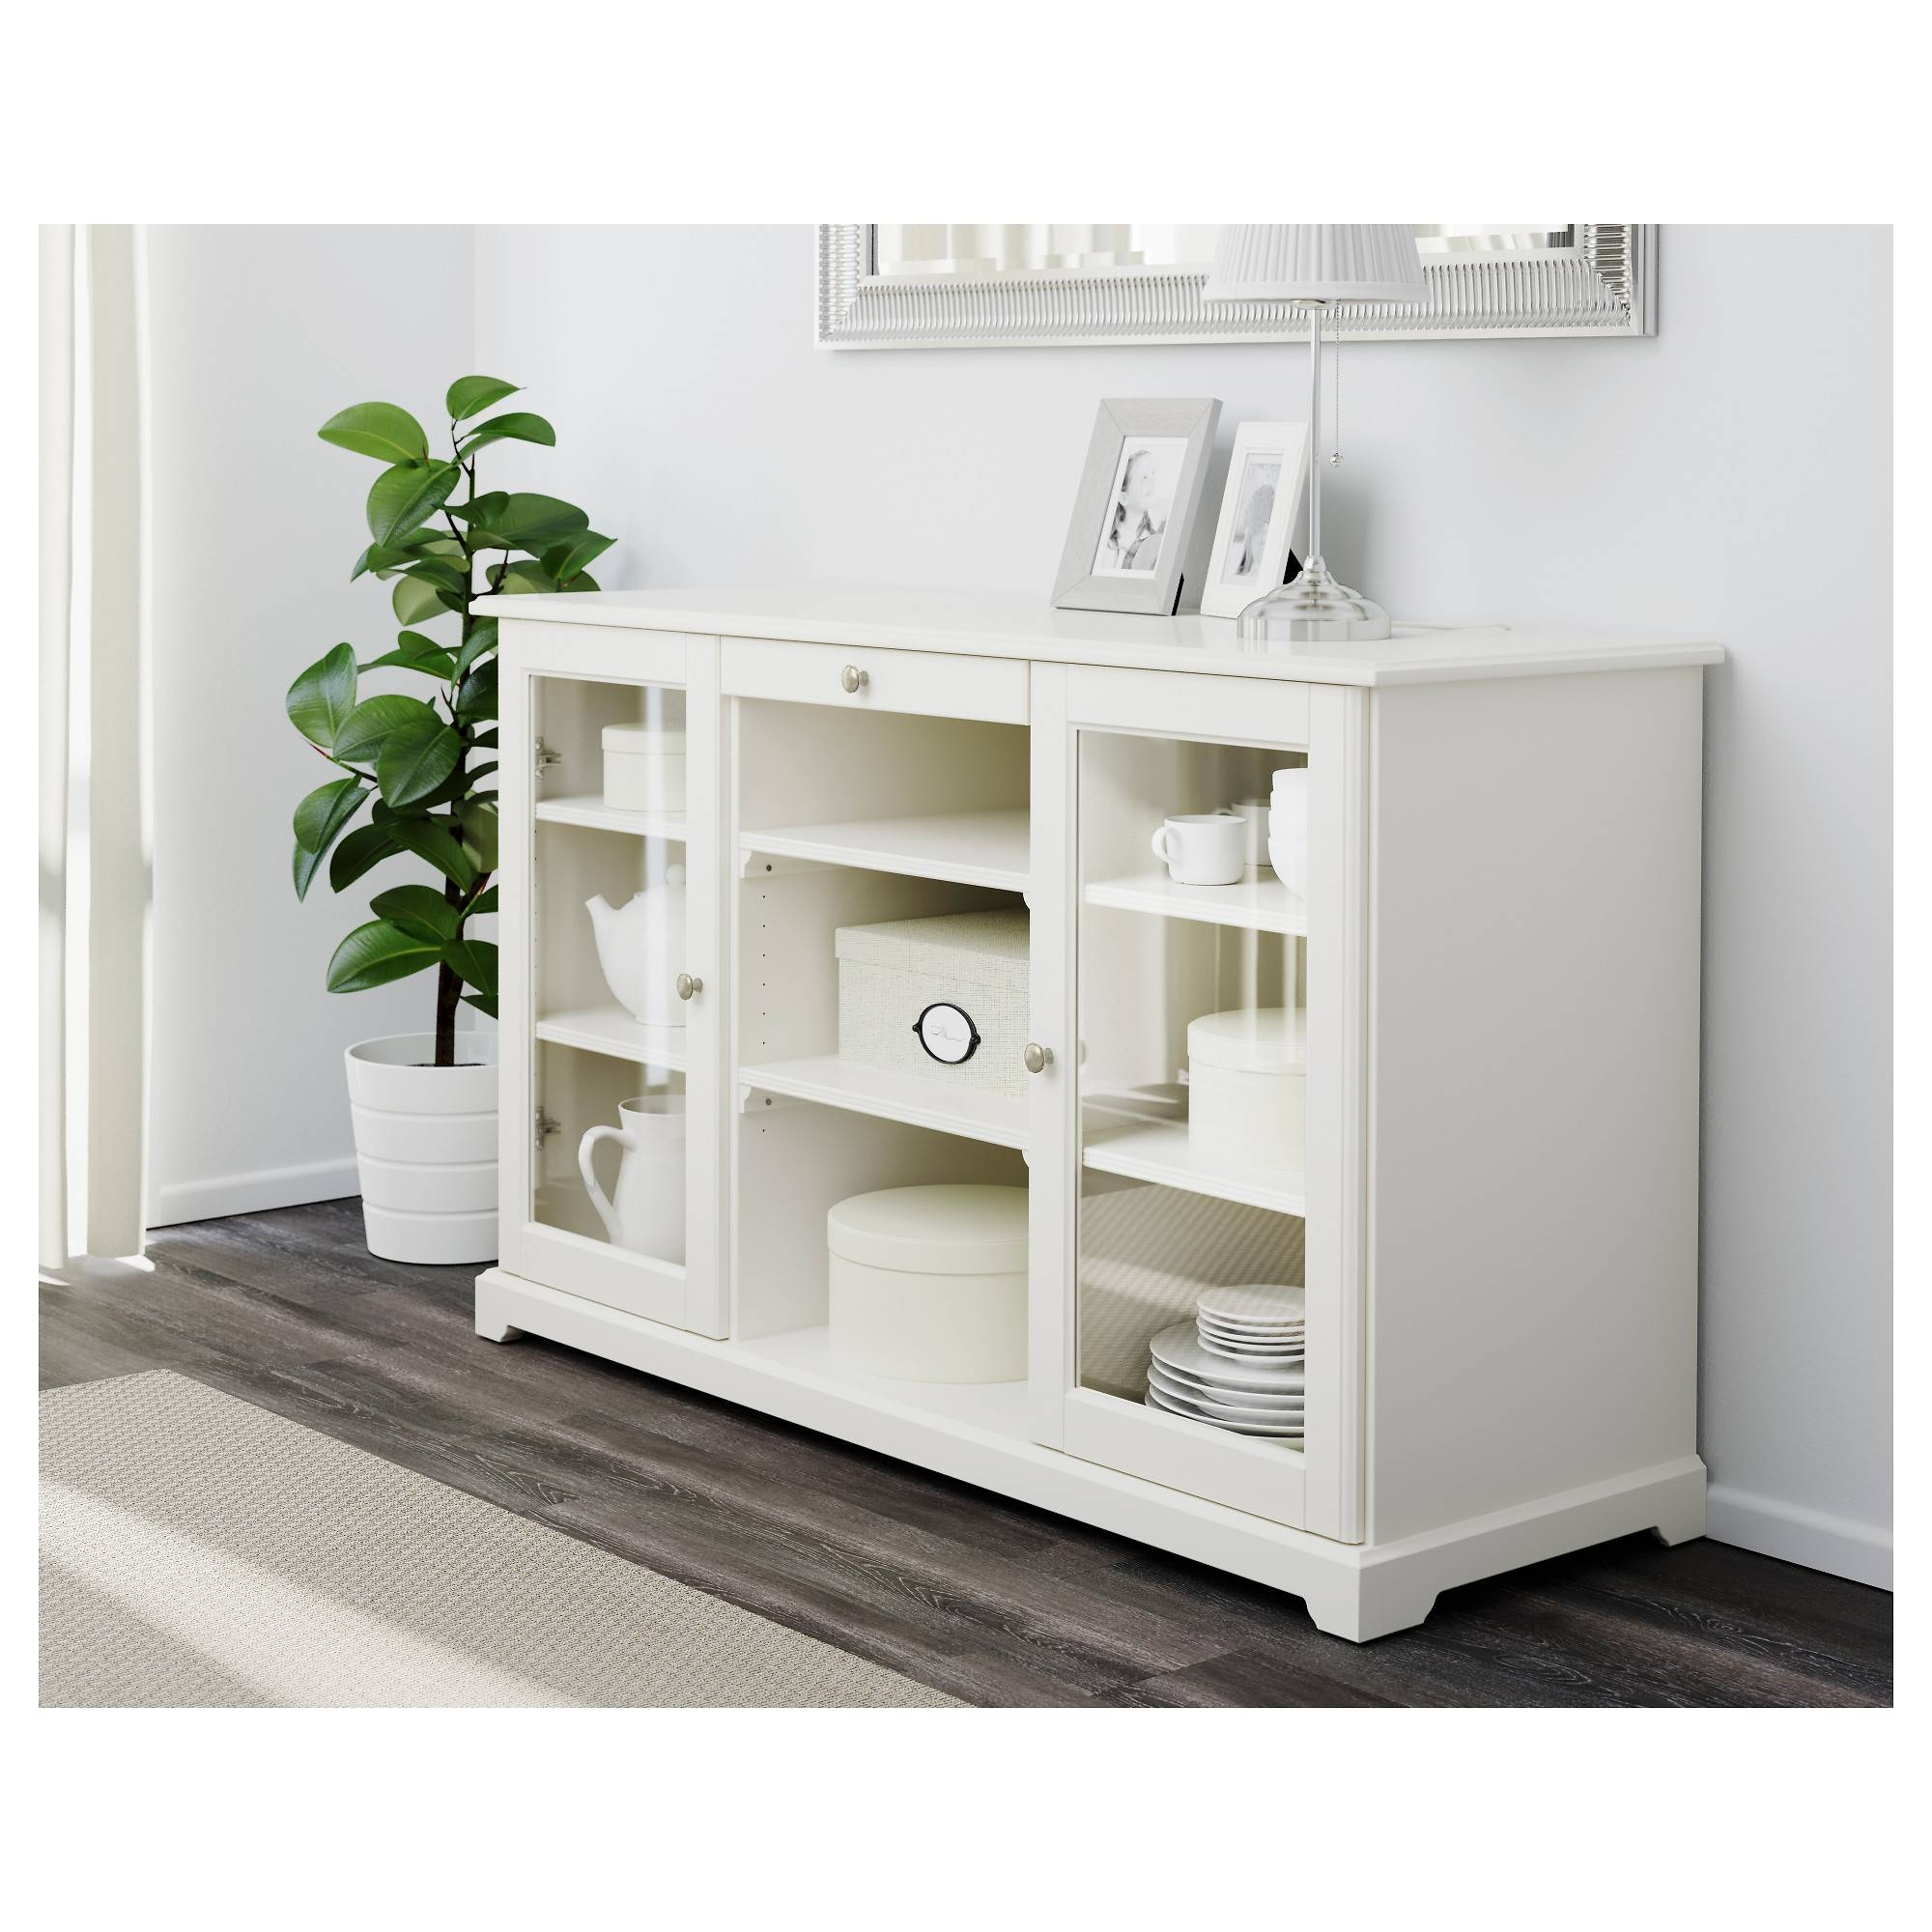 Liatorp Sideboard - White - Ikea with regard to White Sideboards (Image 11 of 30)